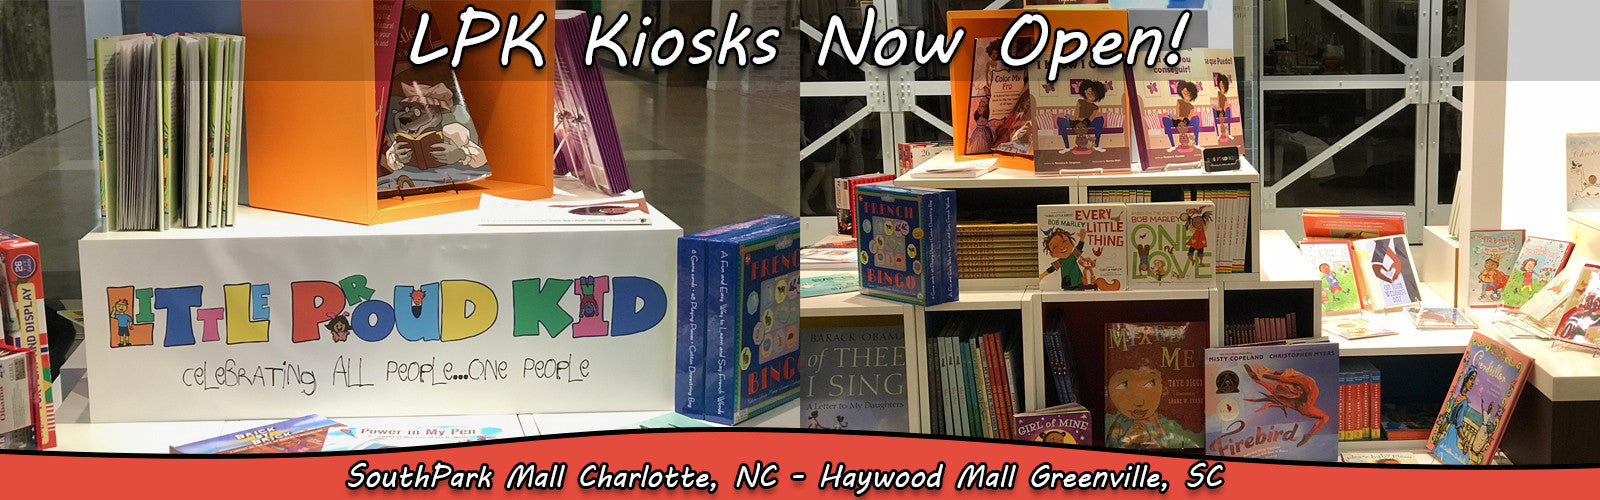 Kiosks now Open!